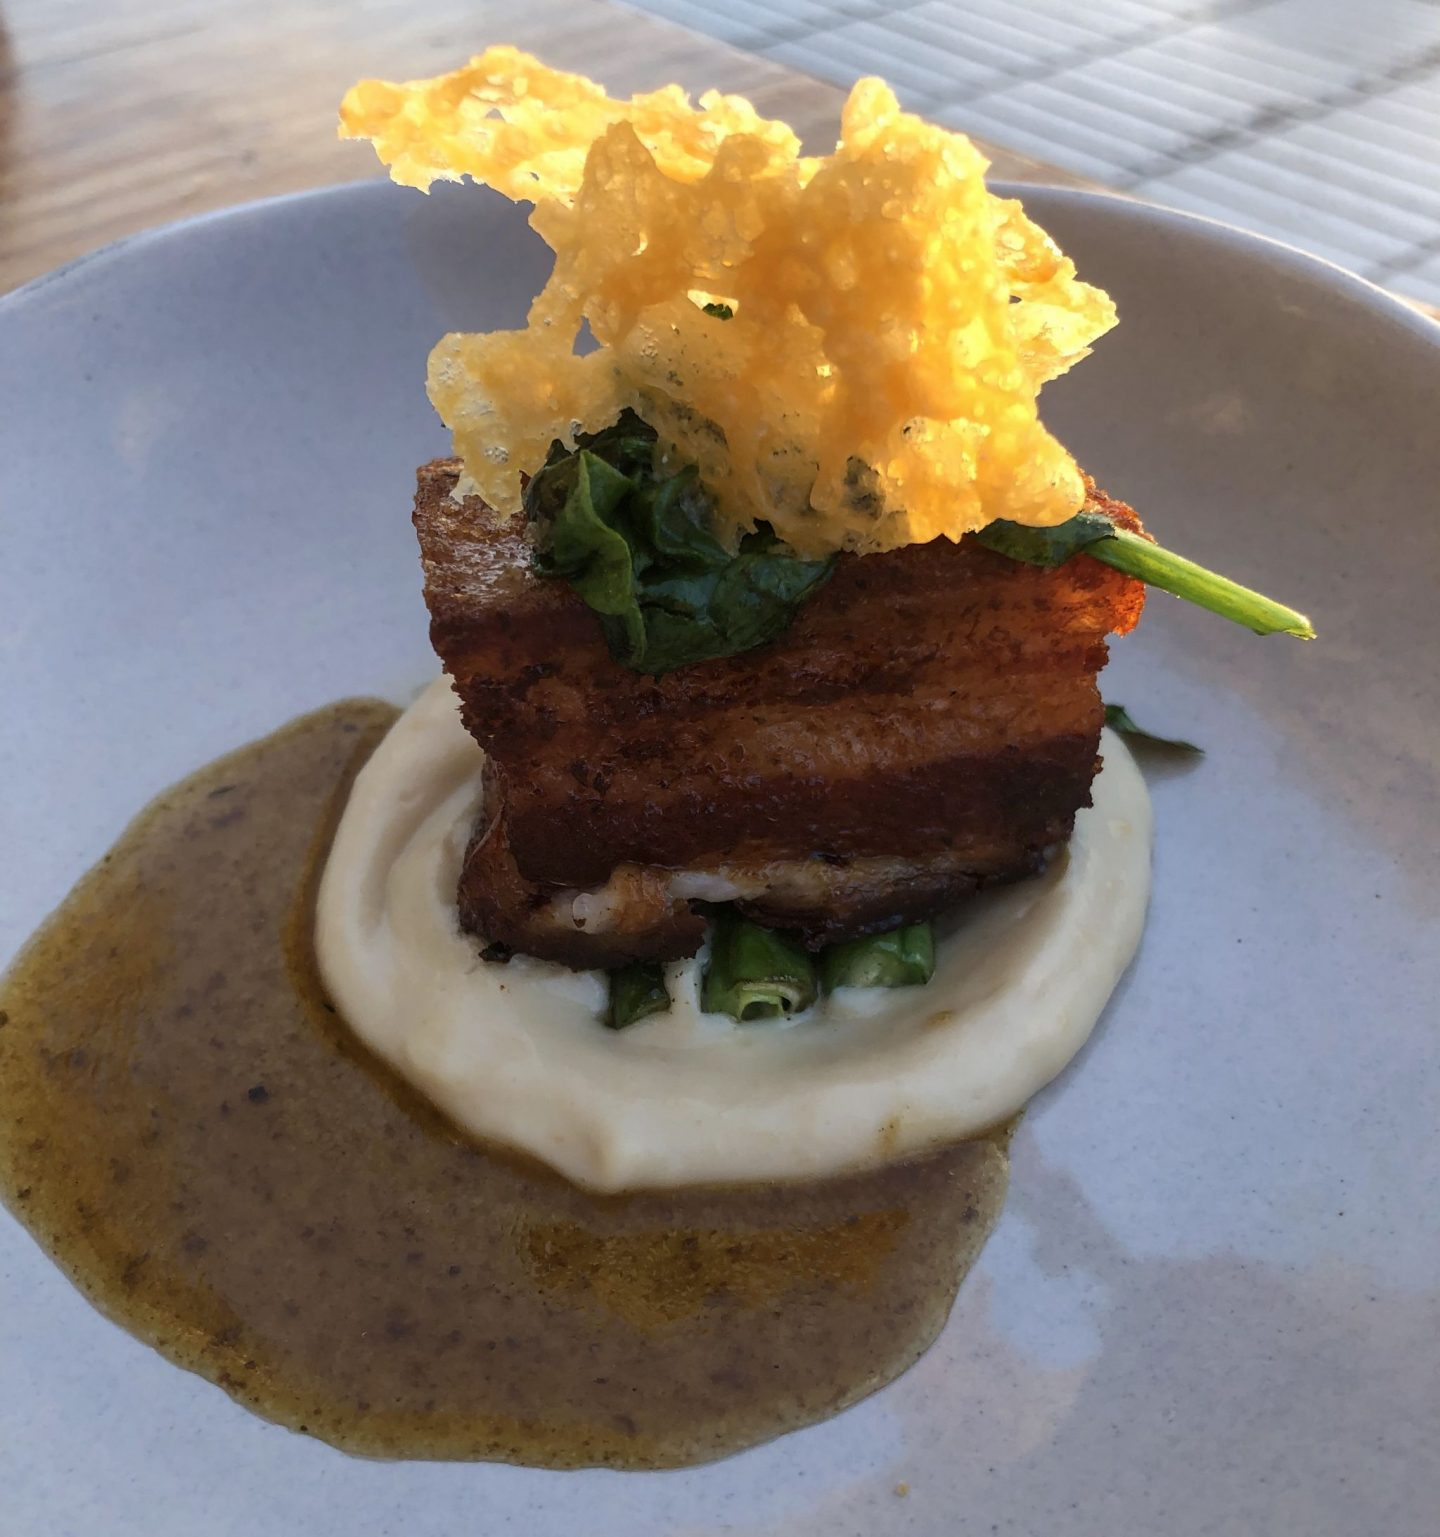 Pork belly on cauliflower puree topped with a parmesan crisp, sat on a white plate in Gran Canaria